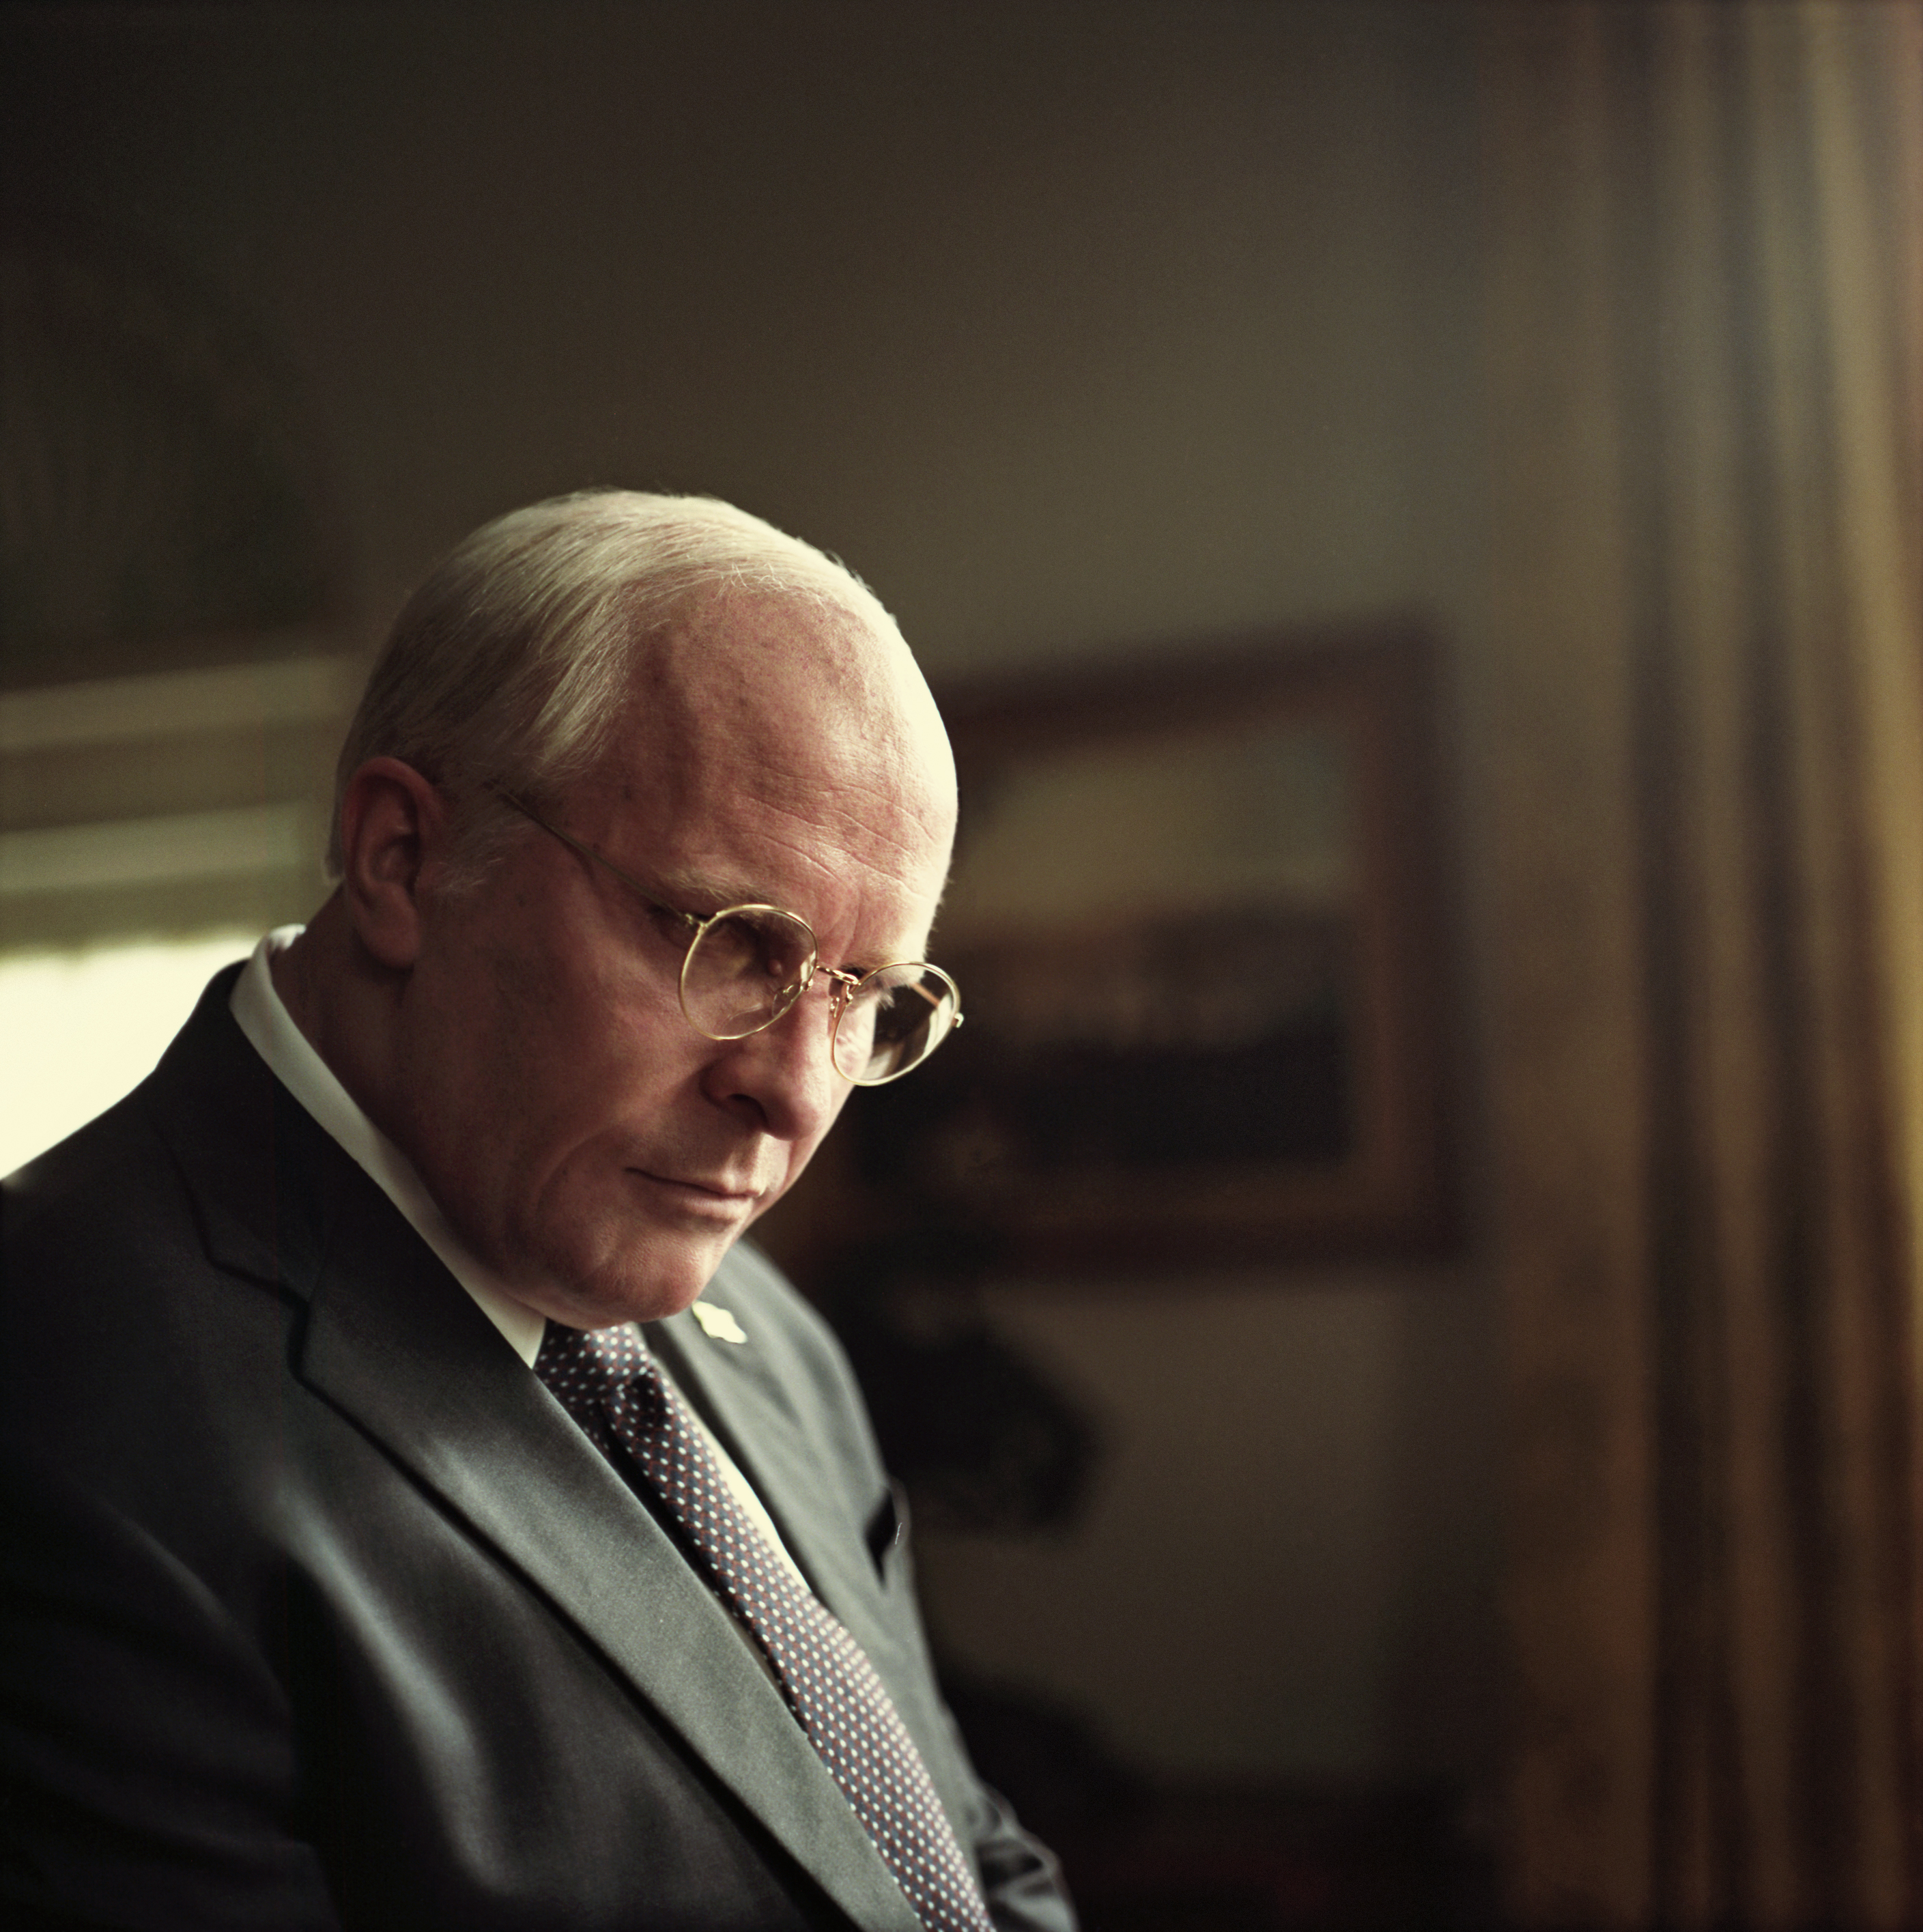 Christian Bale as Dick Cheney in Adam McKay's VICE.